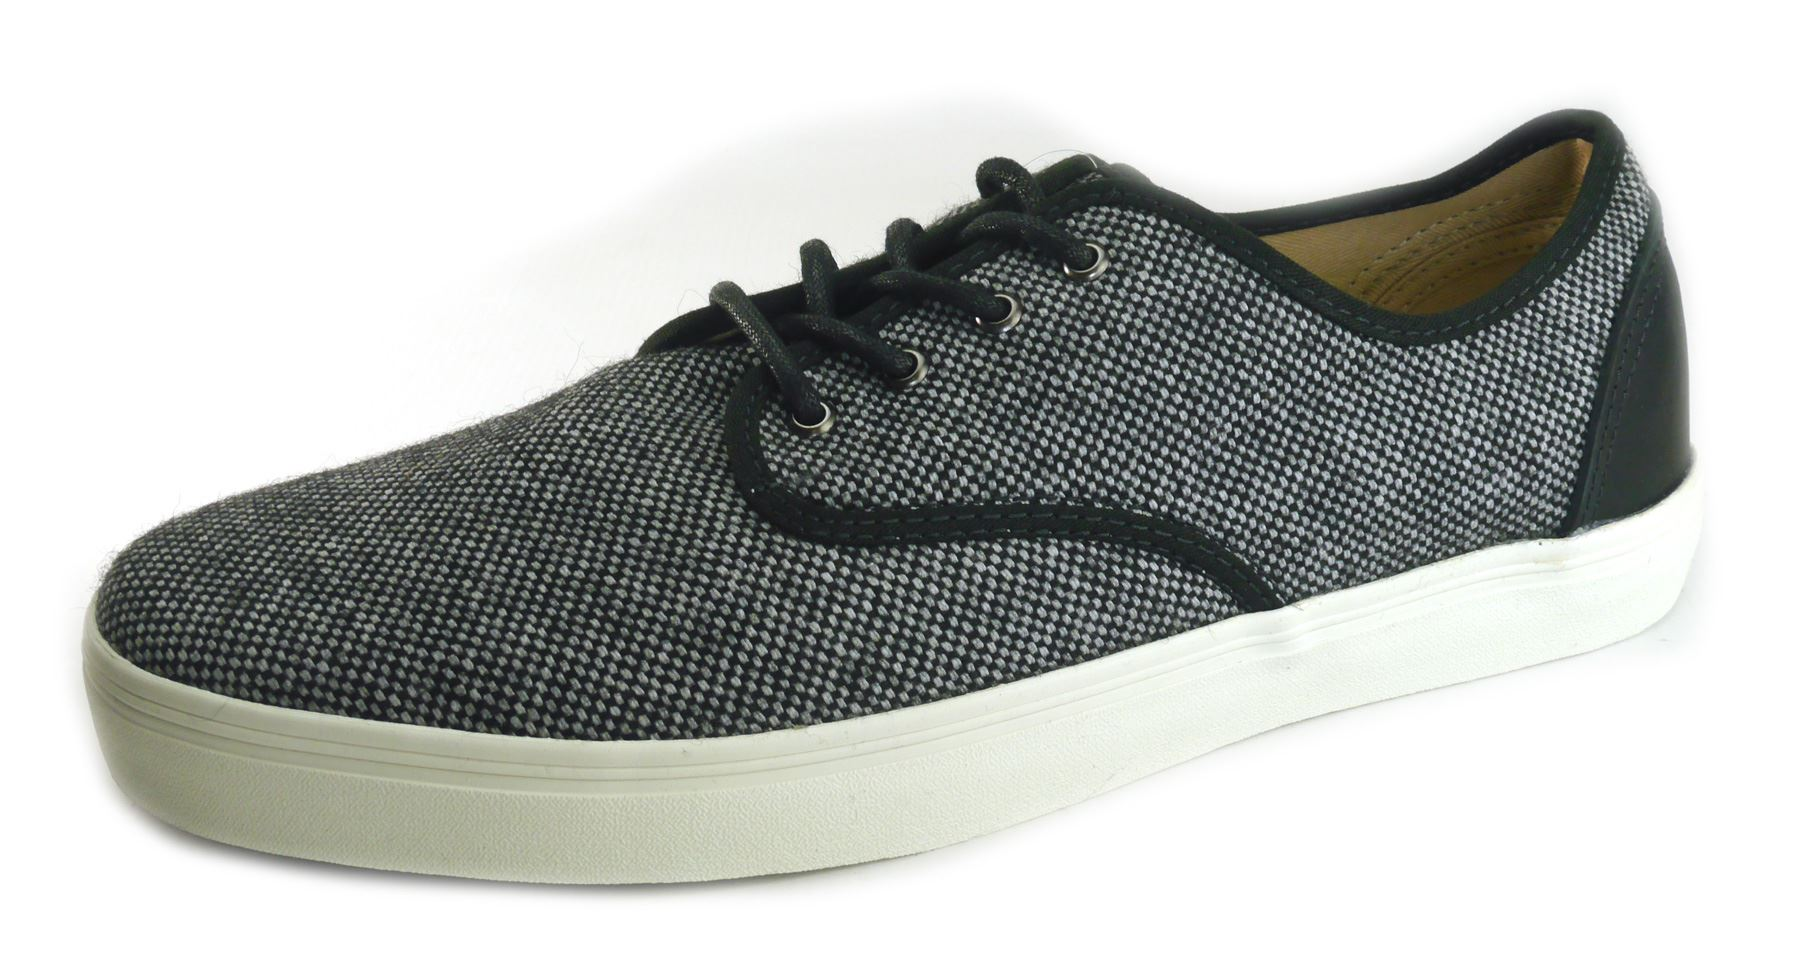 7026cd1585 Details about Vans Tweed Casual Canvas Summer Shoes Grey